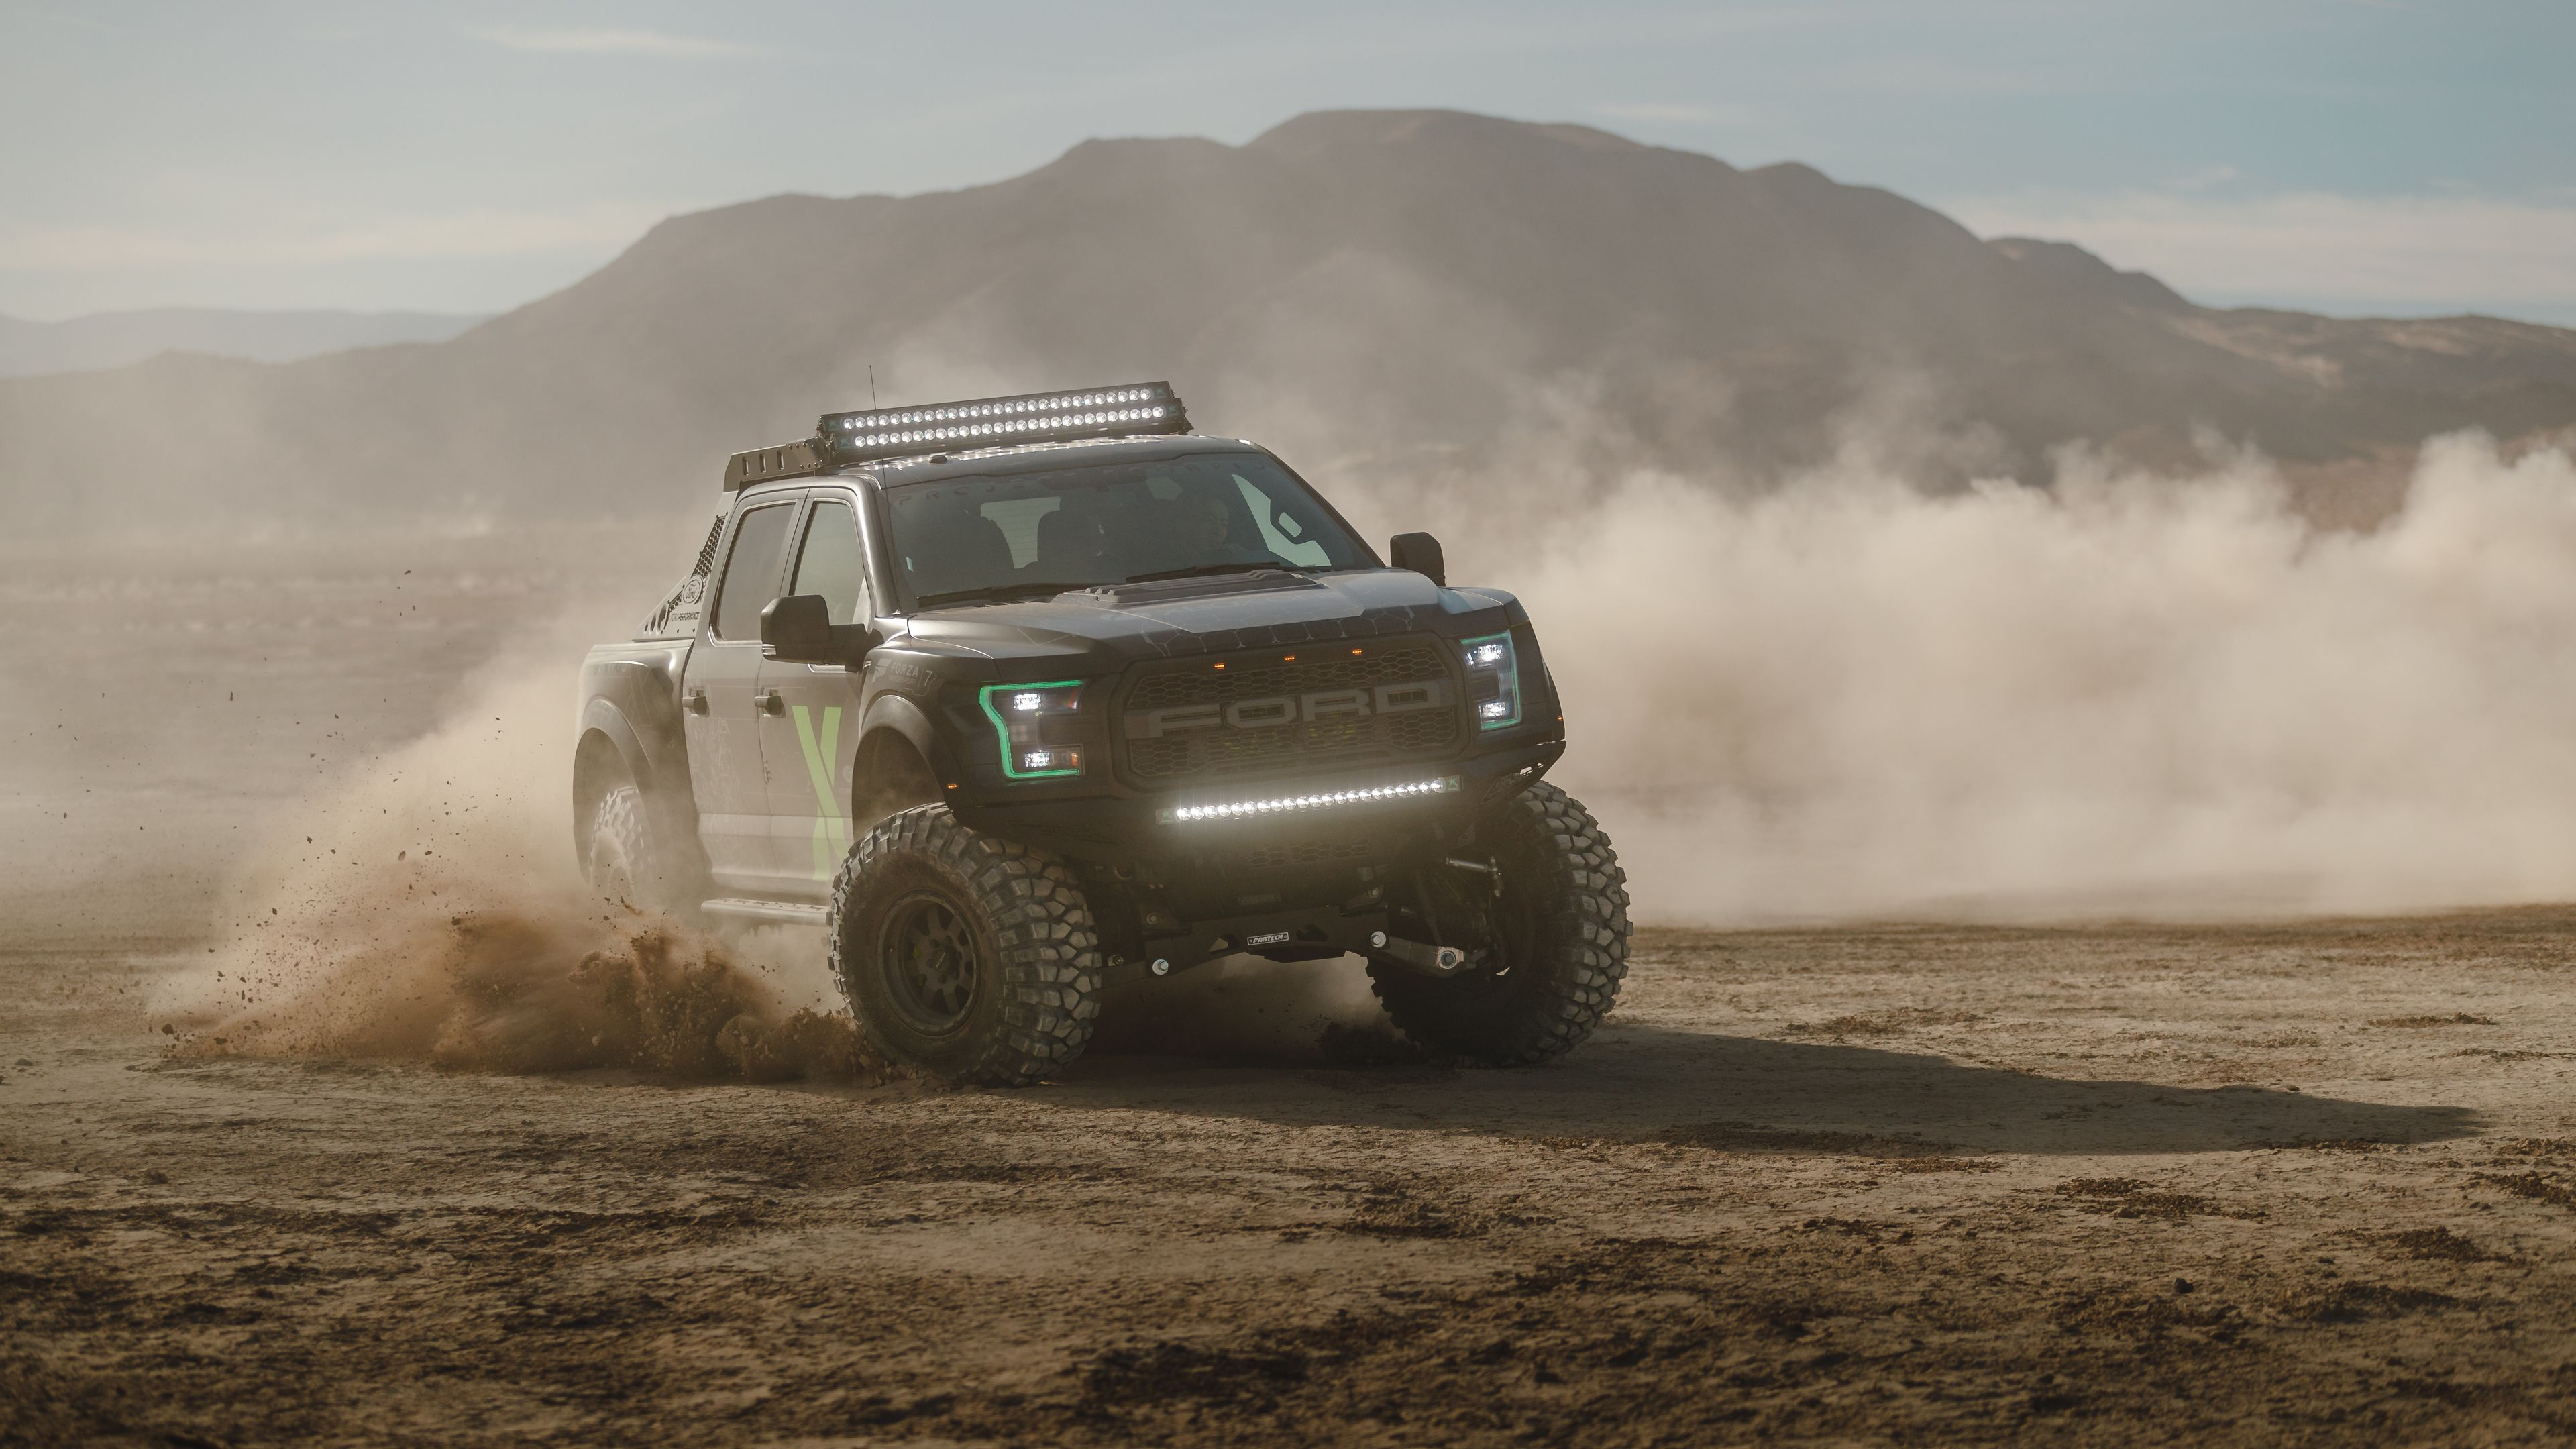 Ford F 150 Raptor Xbox One Edition 4k xbox wallpapers, hd